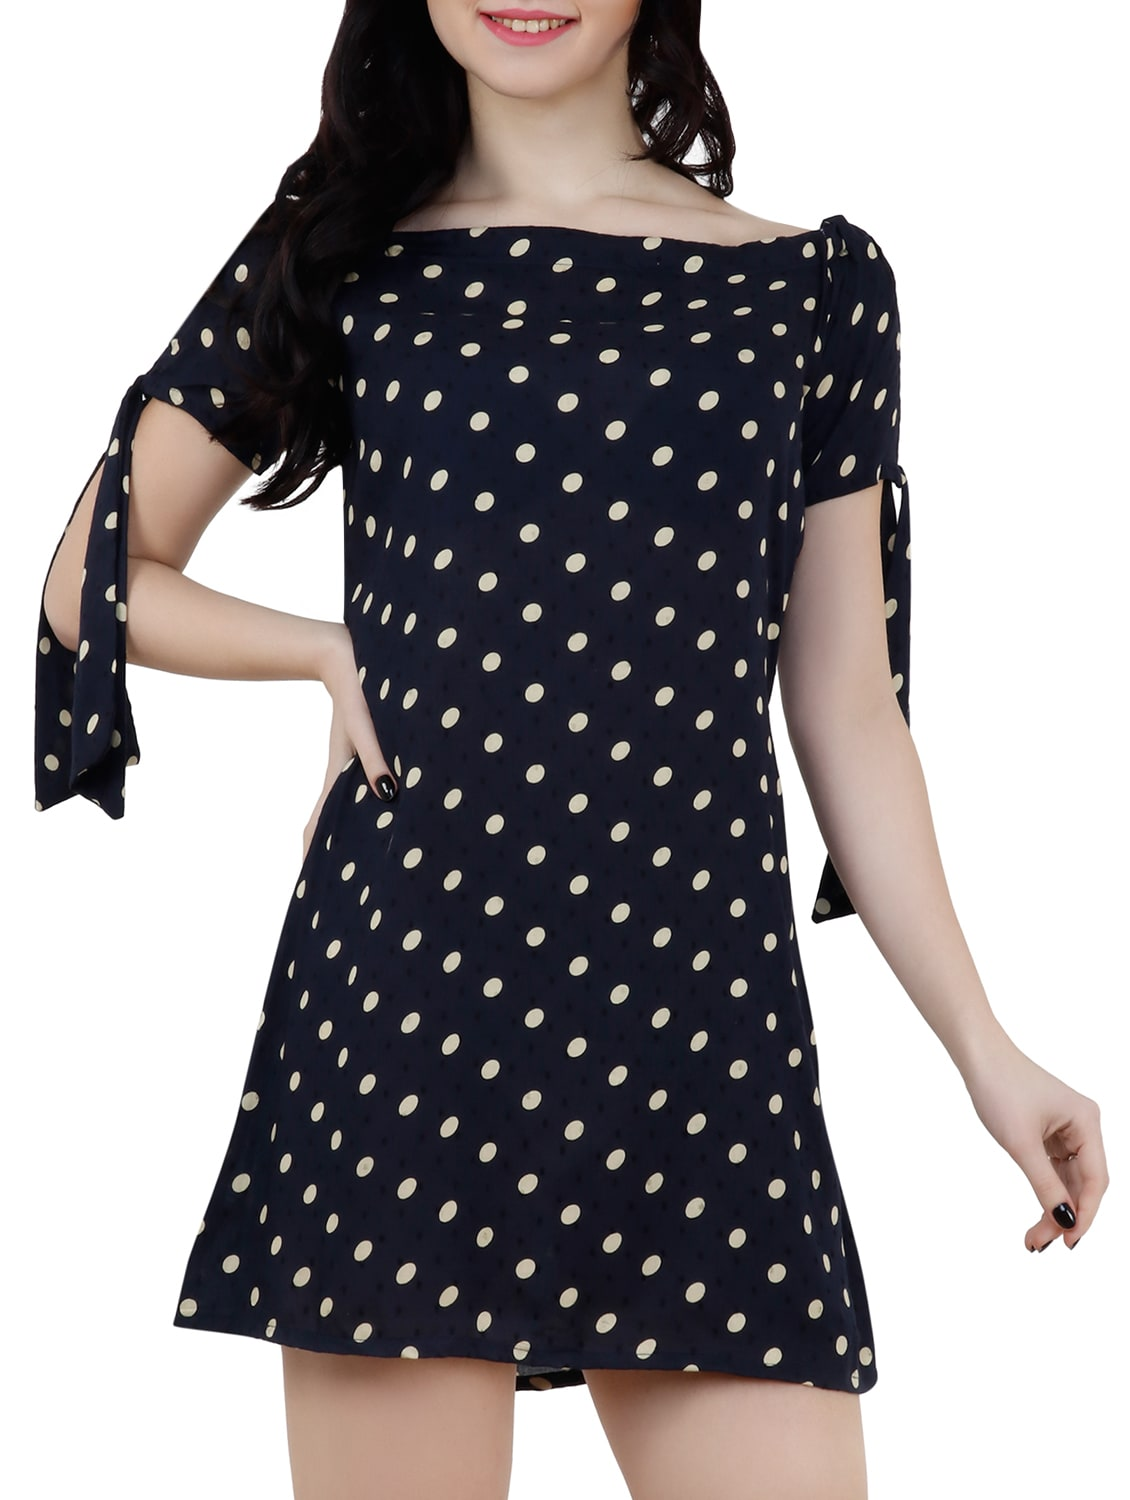 7b3744bbf4 Buy Boat Neck Polka Dots A-line Dress by Capybara - Online shopping for  Dresses in India